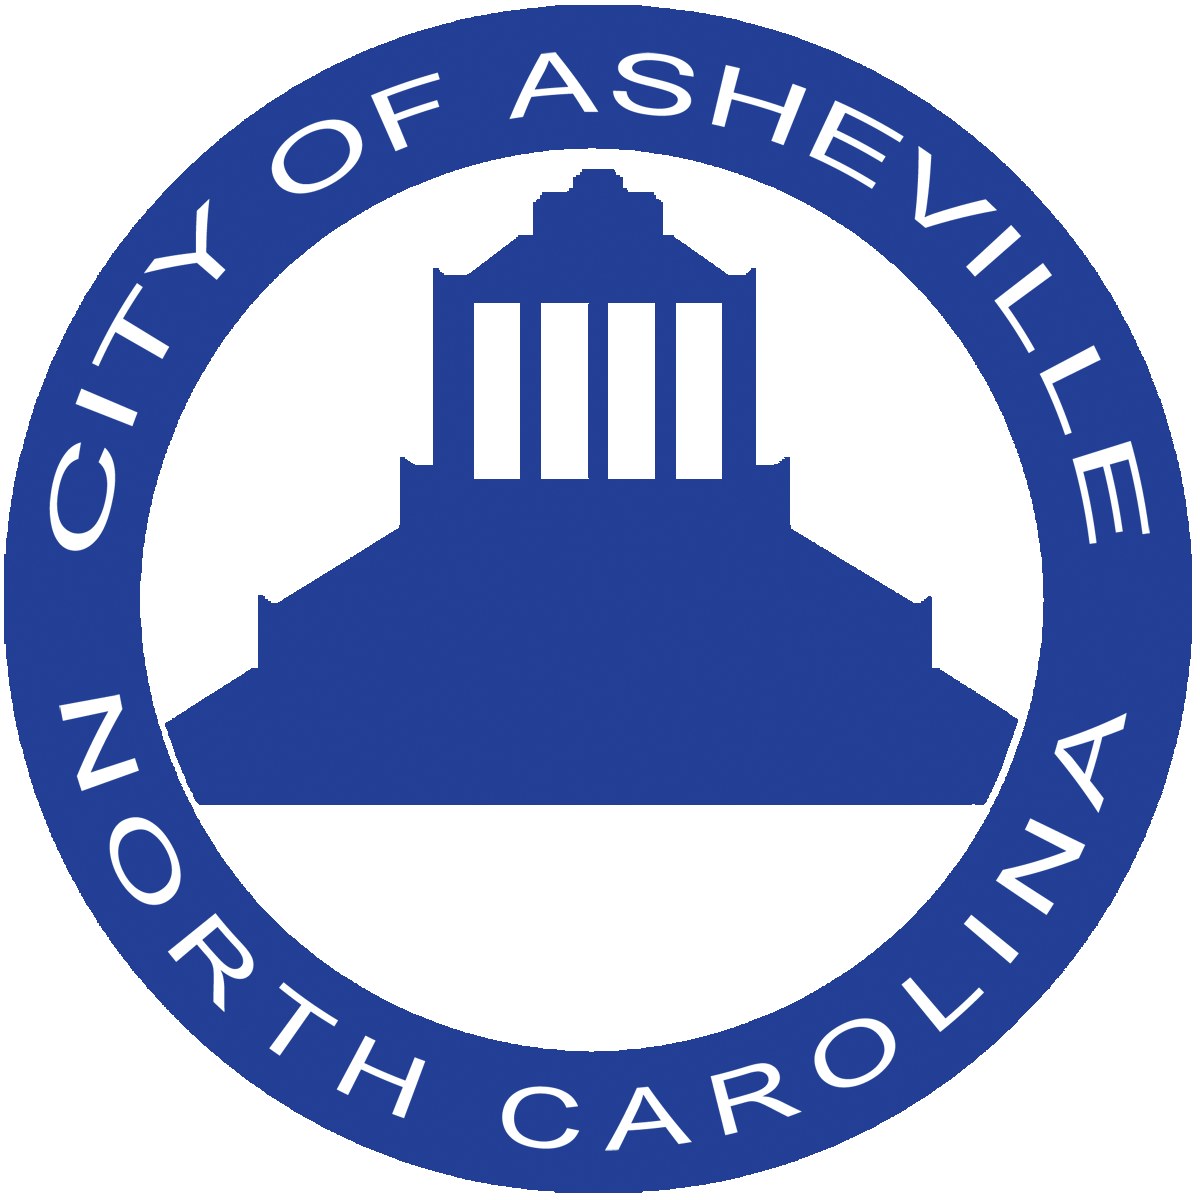 I-26 Connector Project Aesthetics Committee – Applications Being Accepted